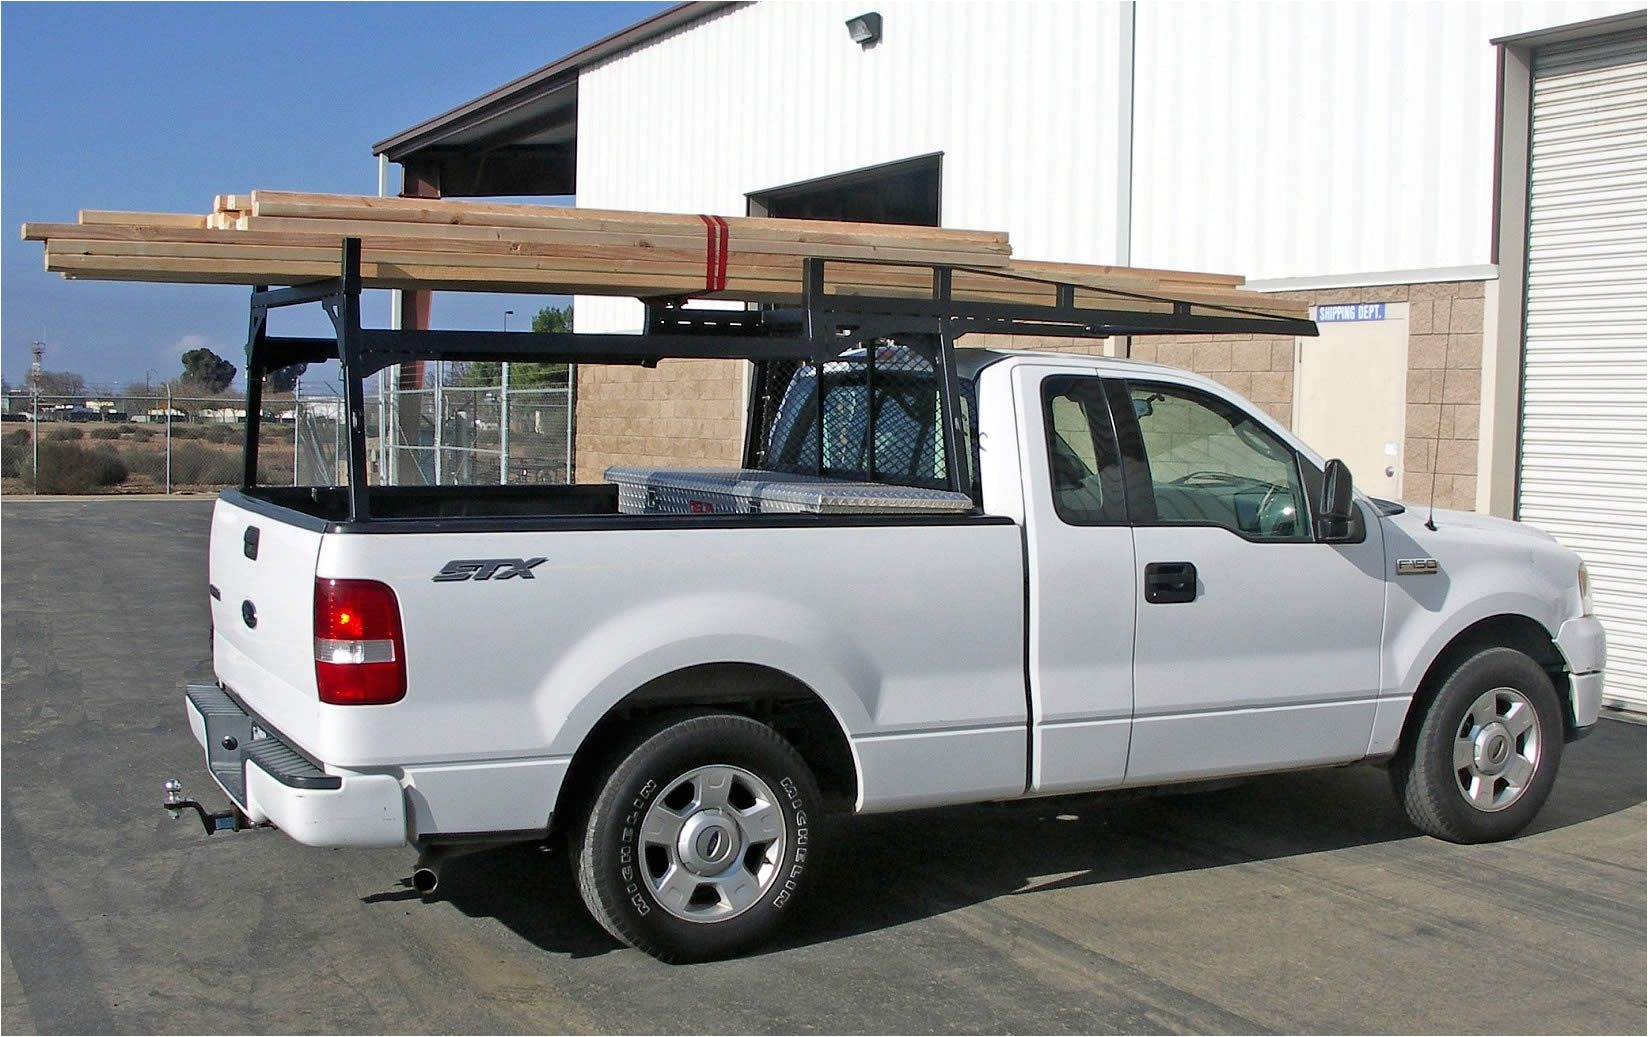 2004 Ford F 150 Ladder Rack Heavy Duty Truck Racks Www Xl Supercab Heavydutytruckracks Com Image Of Job